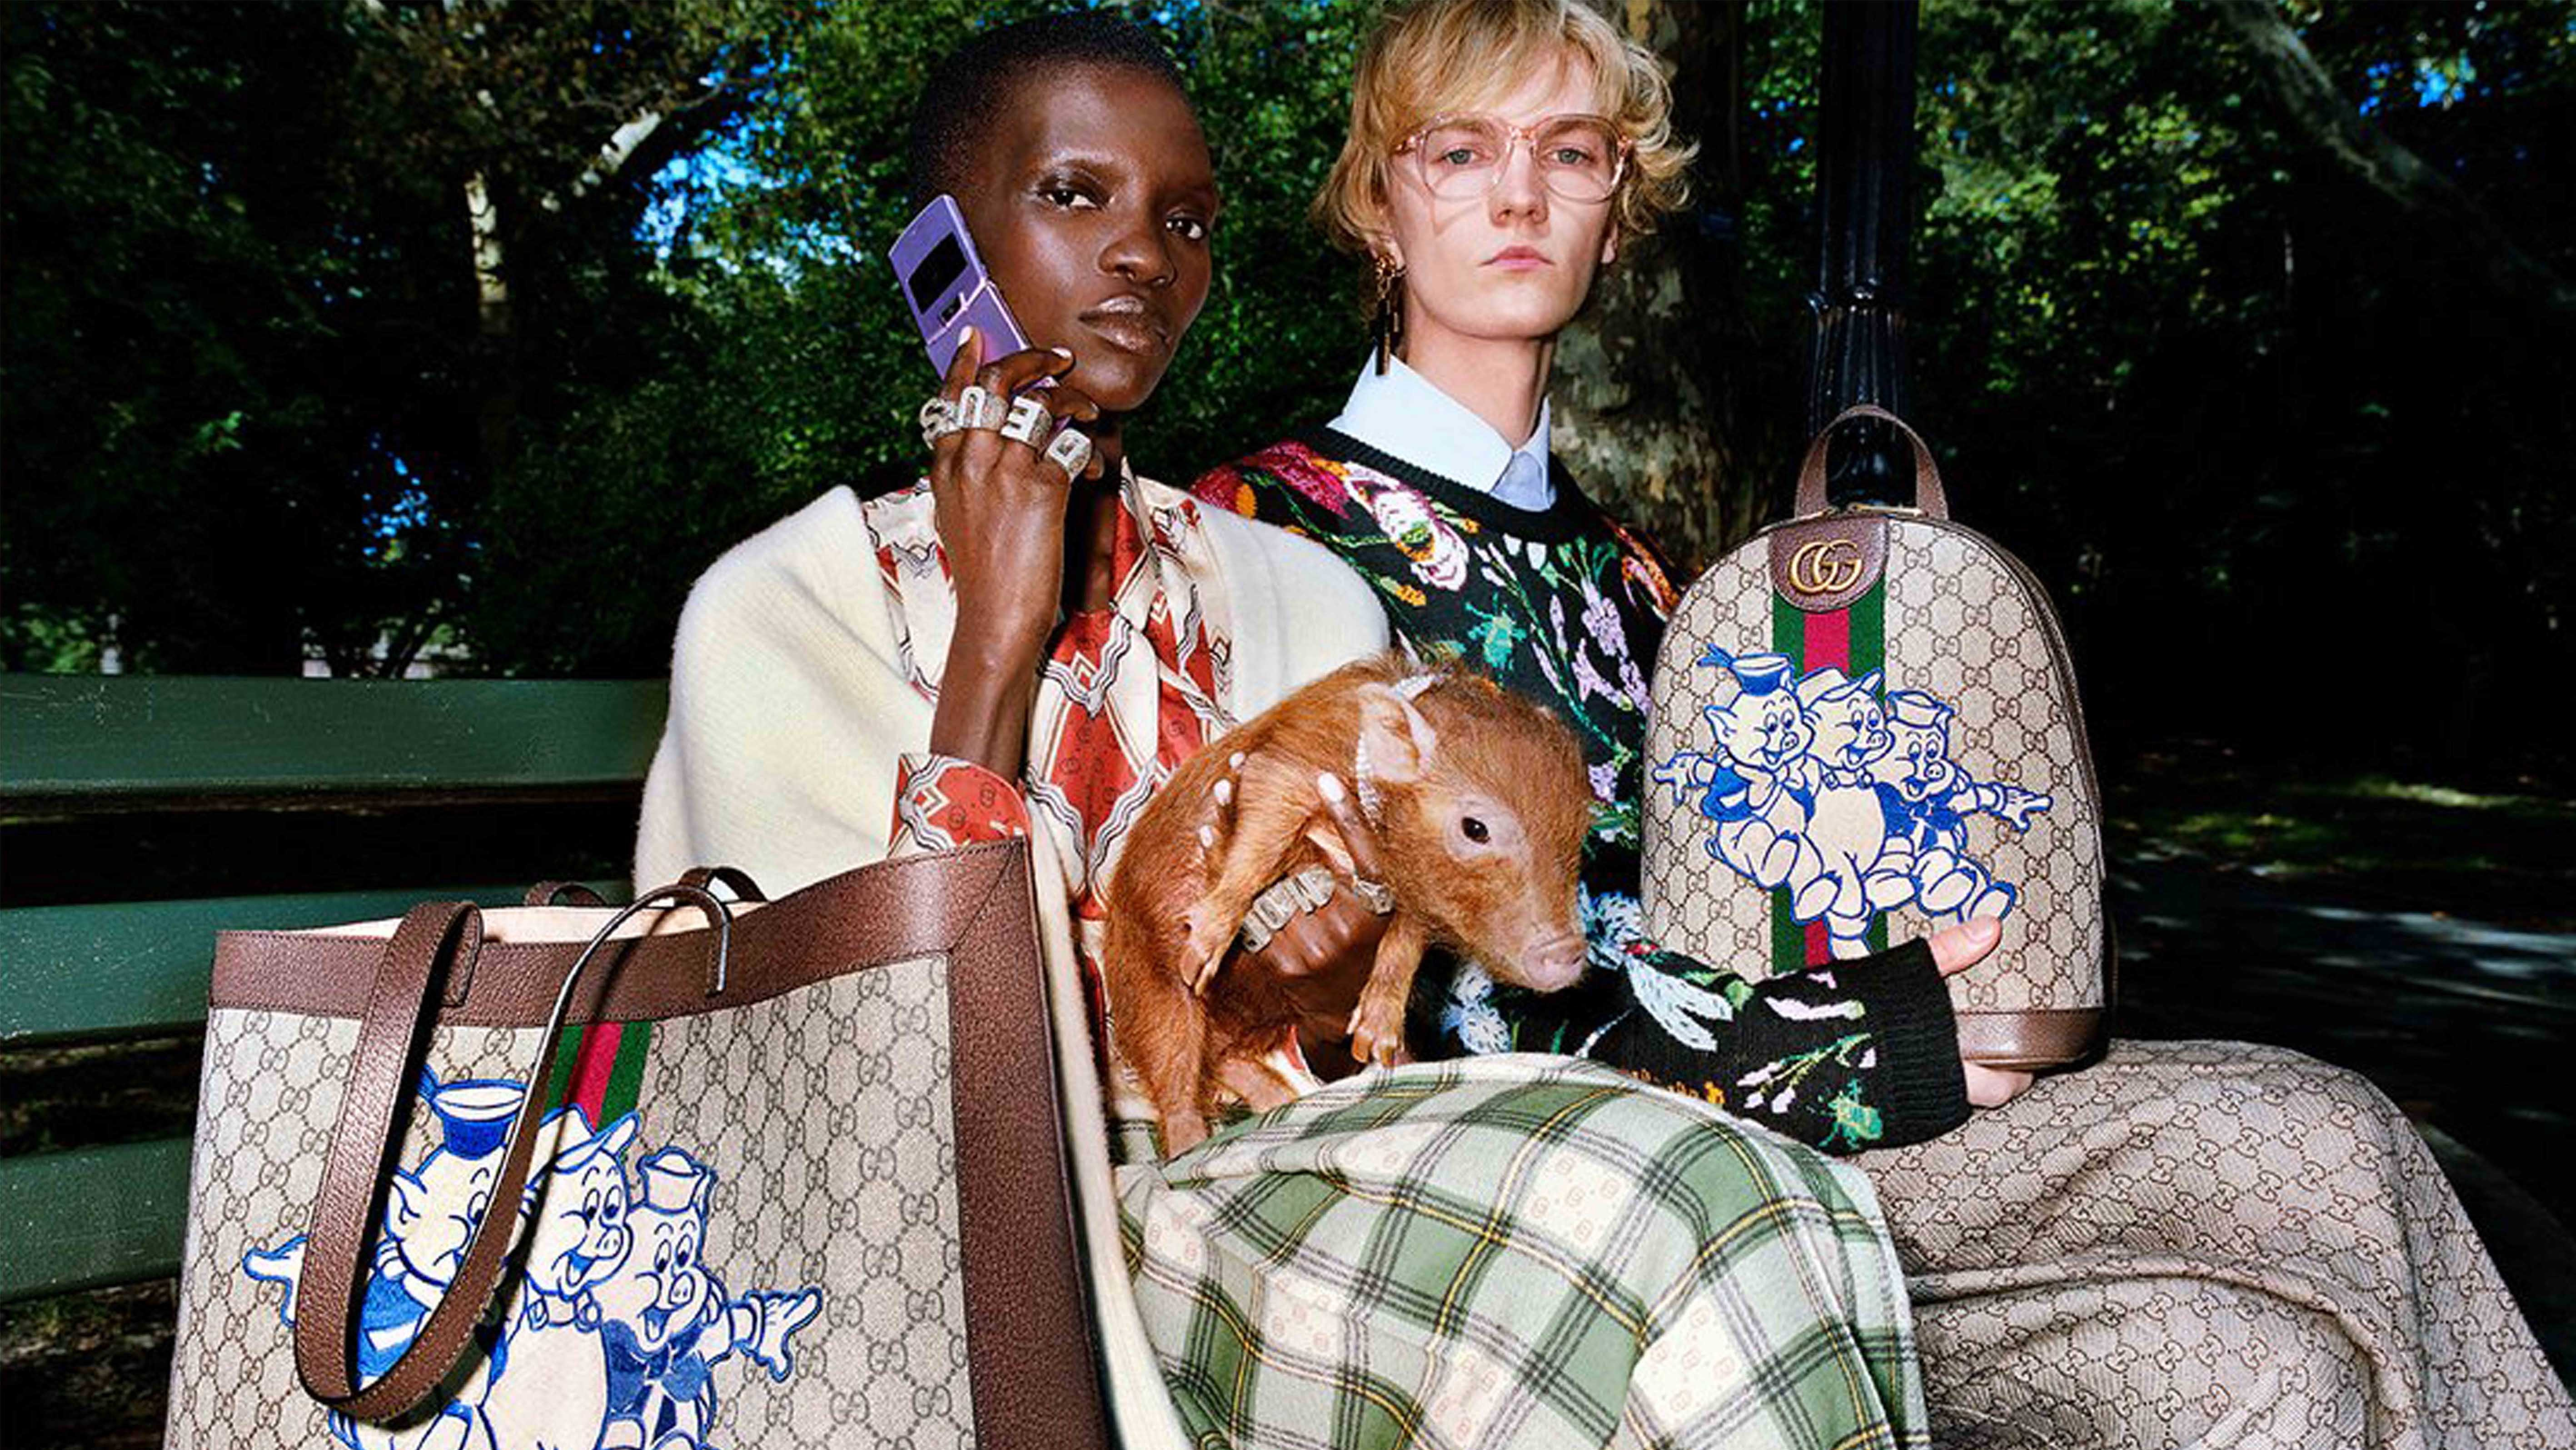 Article cover of Kering Looks to Put Gucci's Rocky Month Behind It